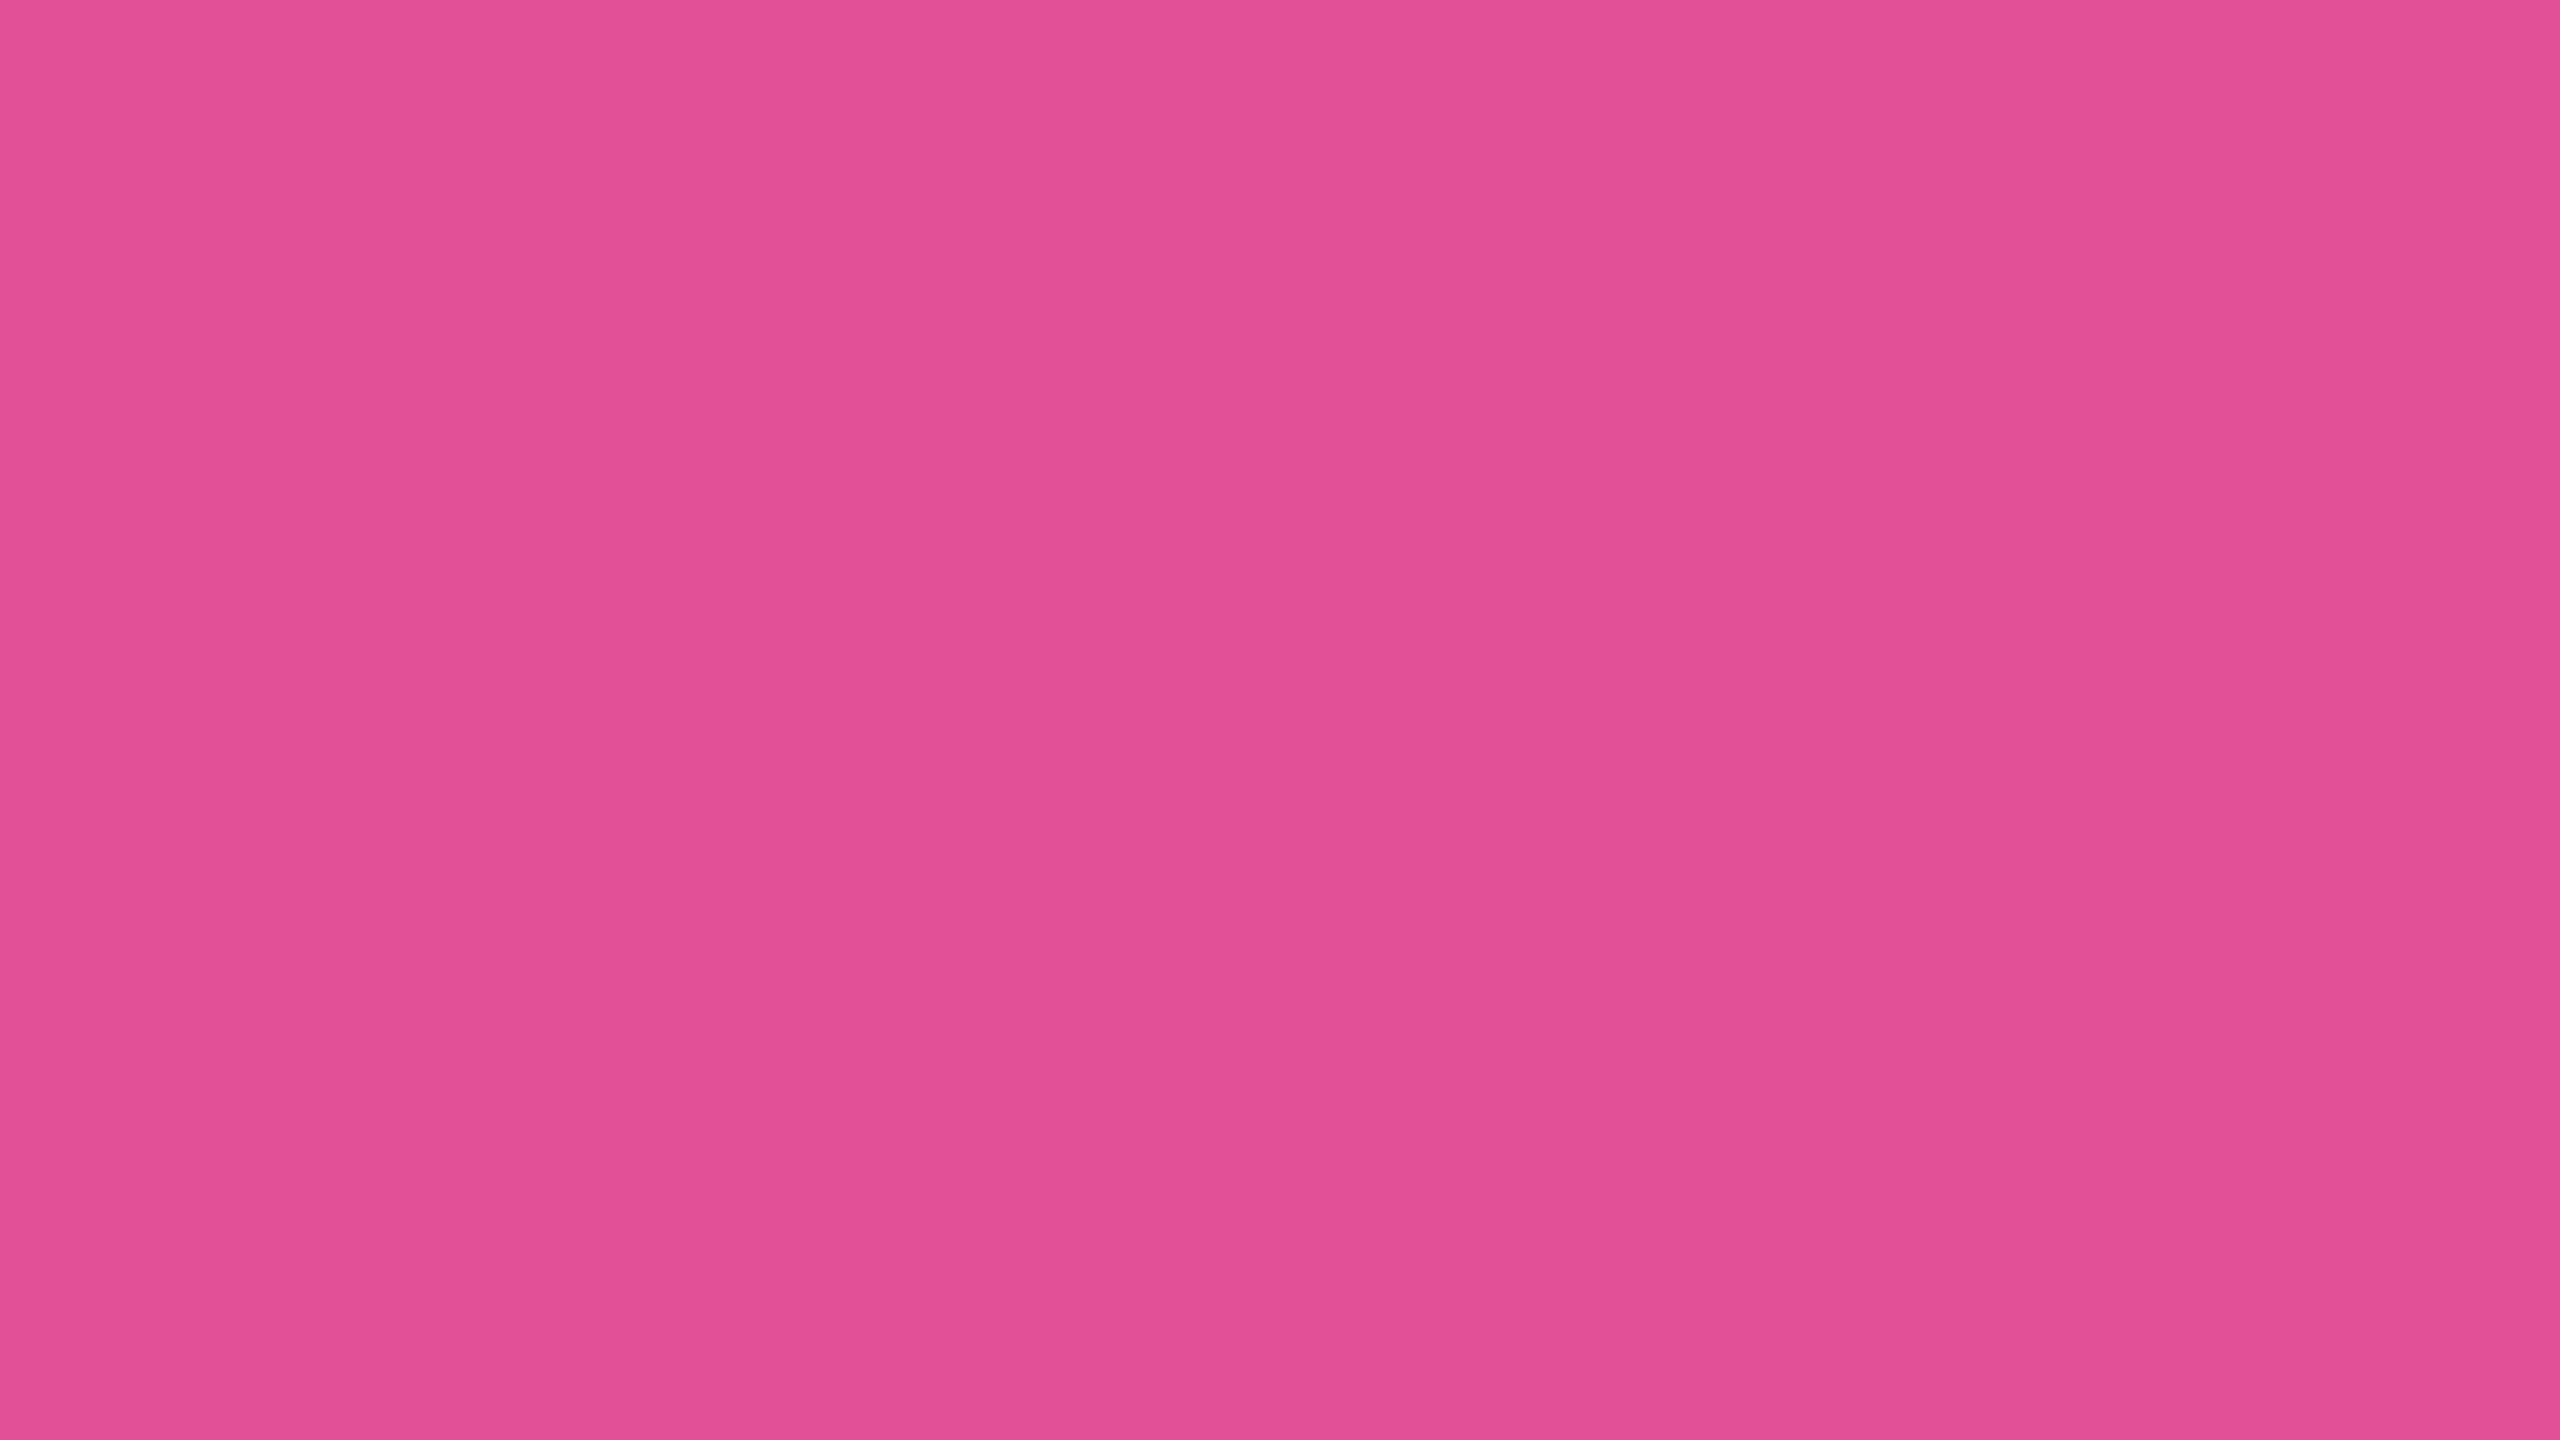 2560x1440 Raspberry Pink Solid Color Background